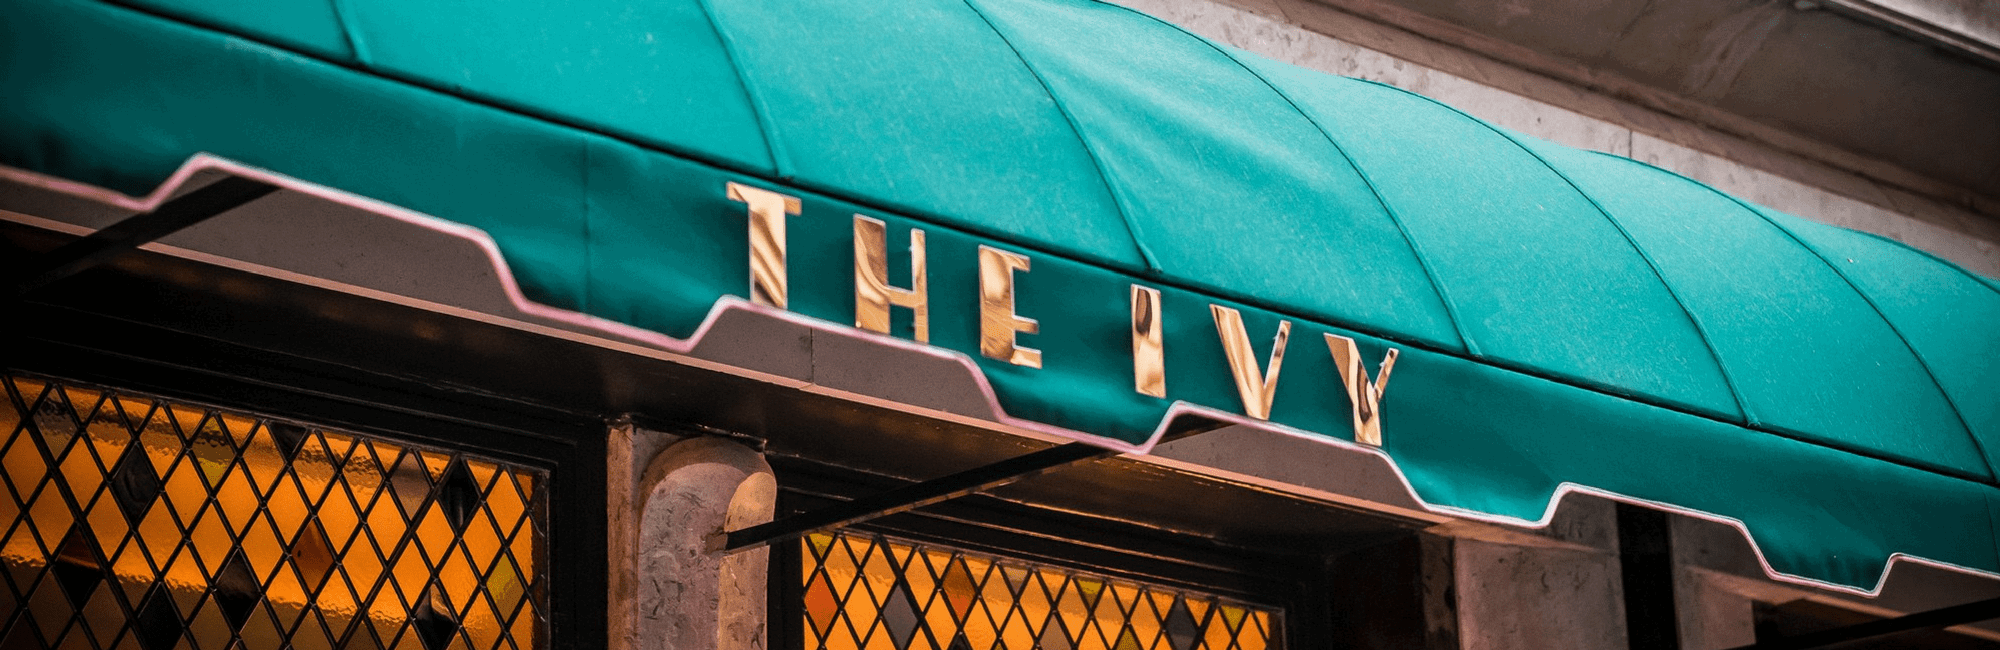 The Ivy, in Covent Garden, is an iconic West End theatre restaurant with a private room for hire.